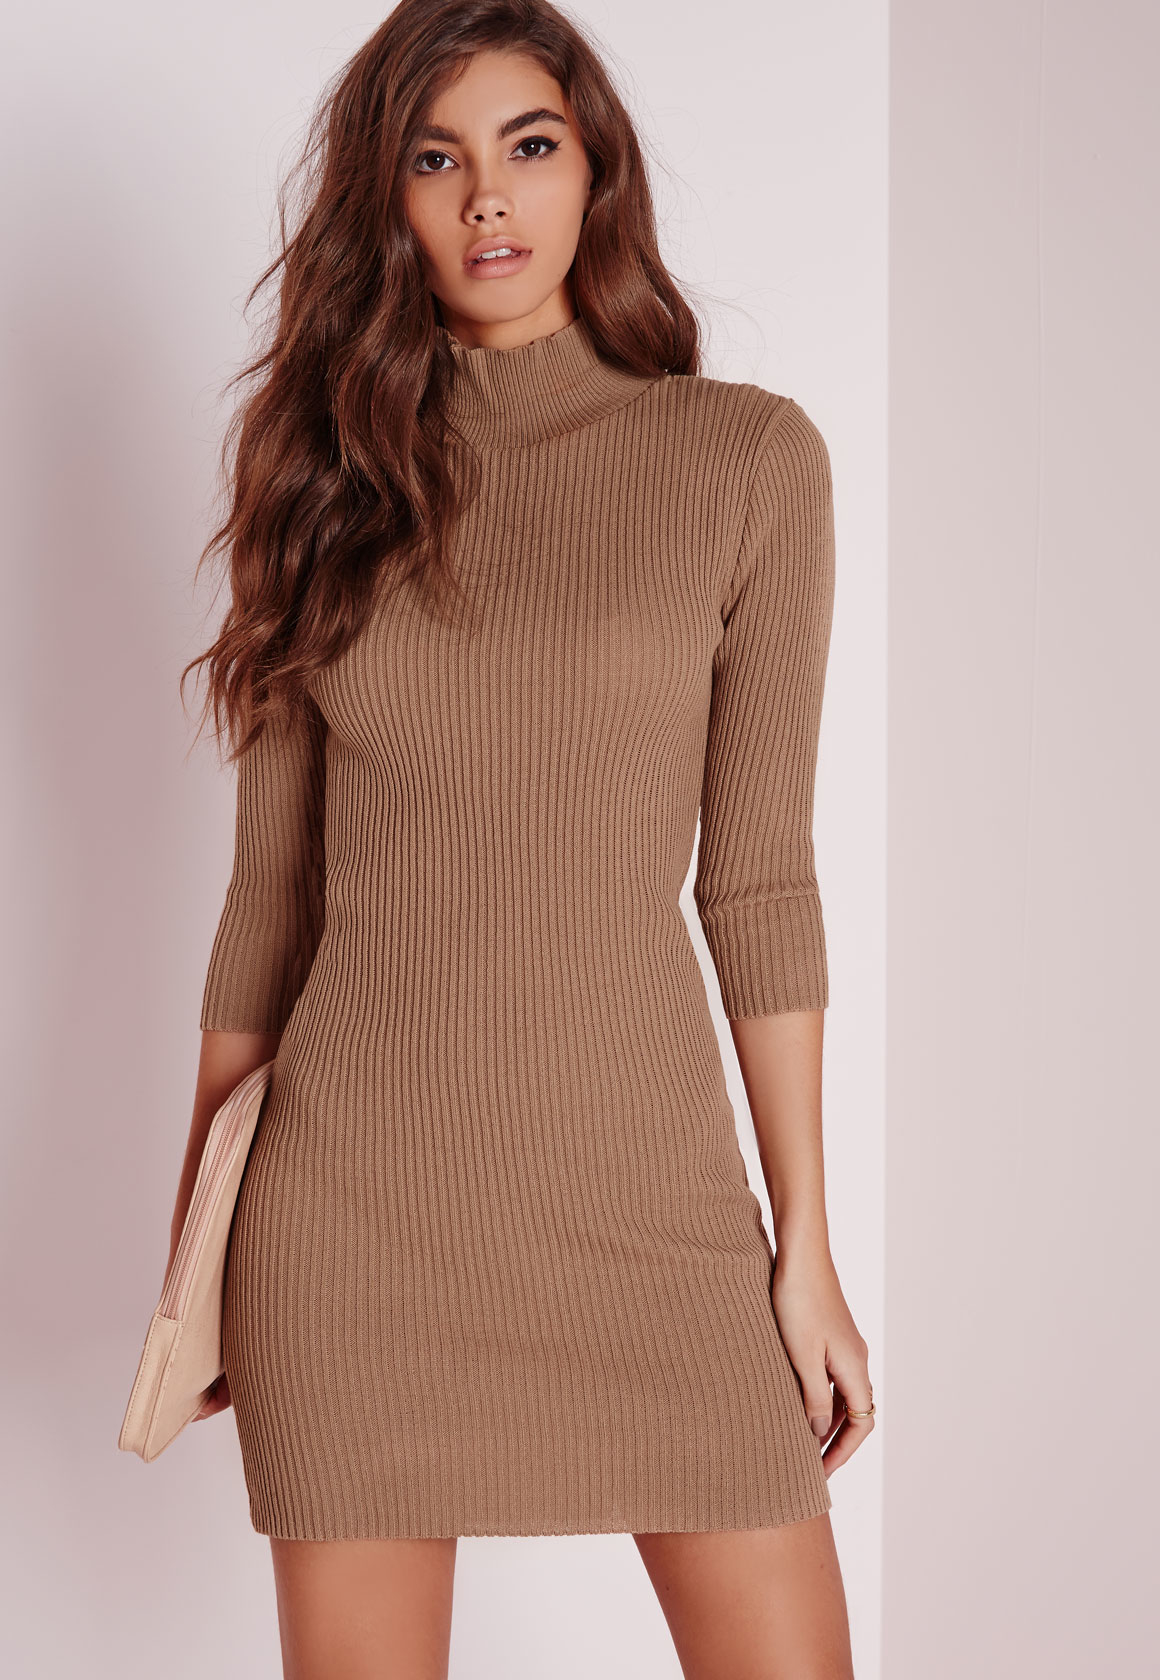 Sweater Dresses Seeing you through from winter to summer, sweater dresses are the biggest trans-seasonal trend and boohoo's collection has got you covered, from casual sweater dresses to cable-knit maxi dresses for your next vacay.